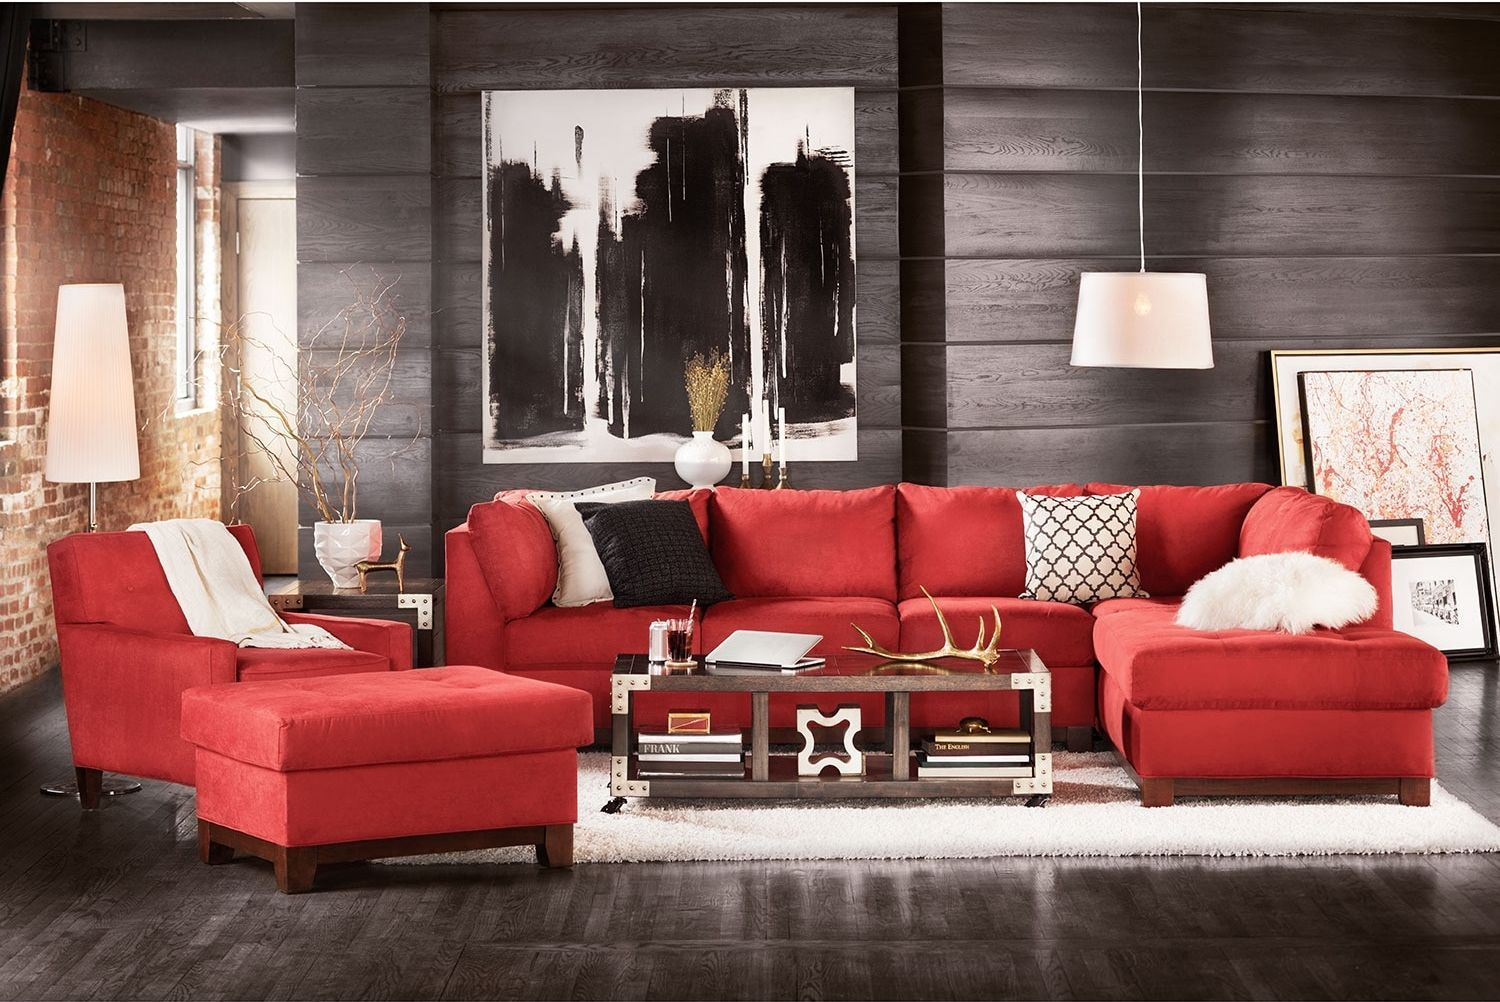 image result for unique cool living room  red couch